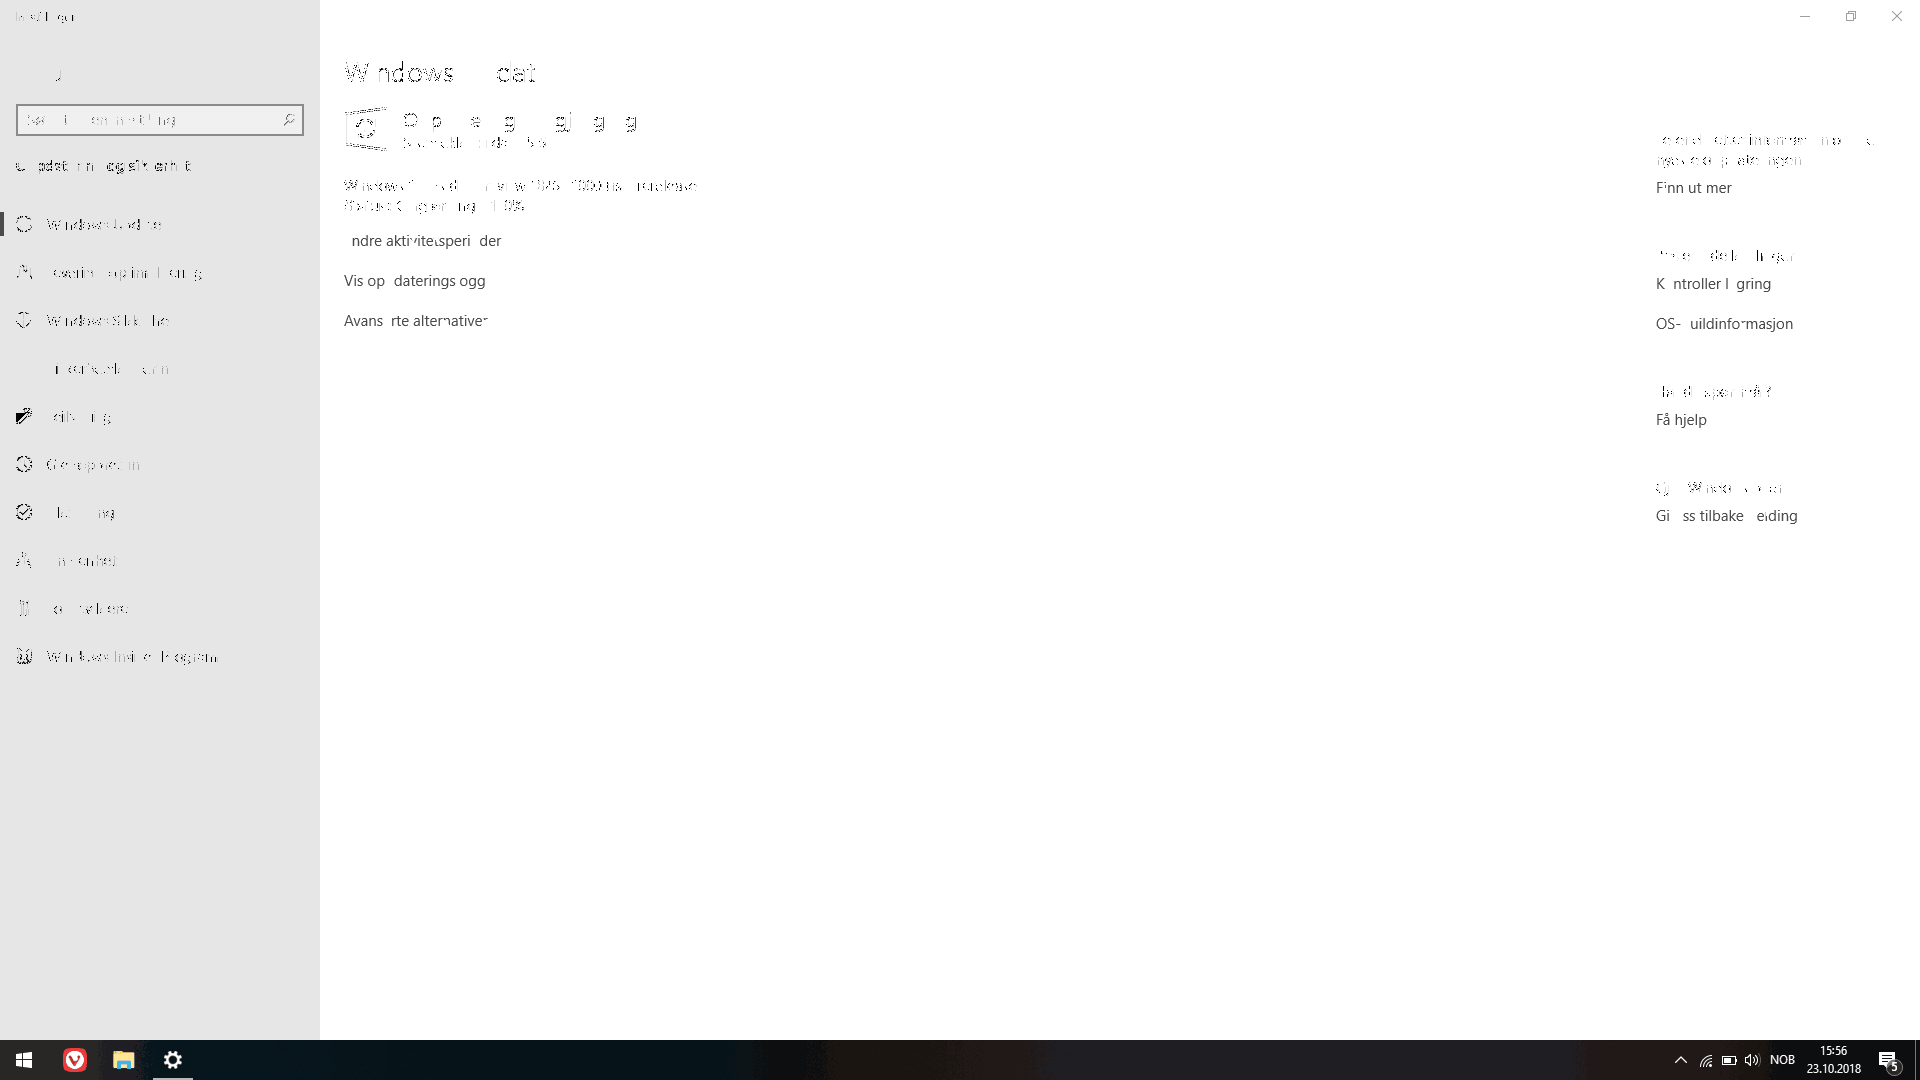 Windows 10 Version 1809 Causes Font Issues